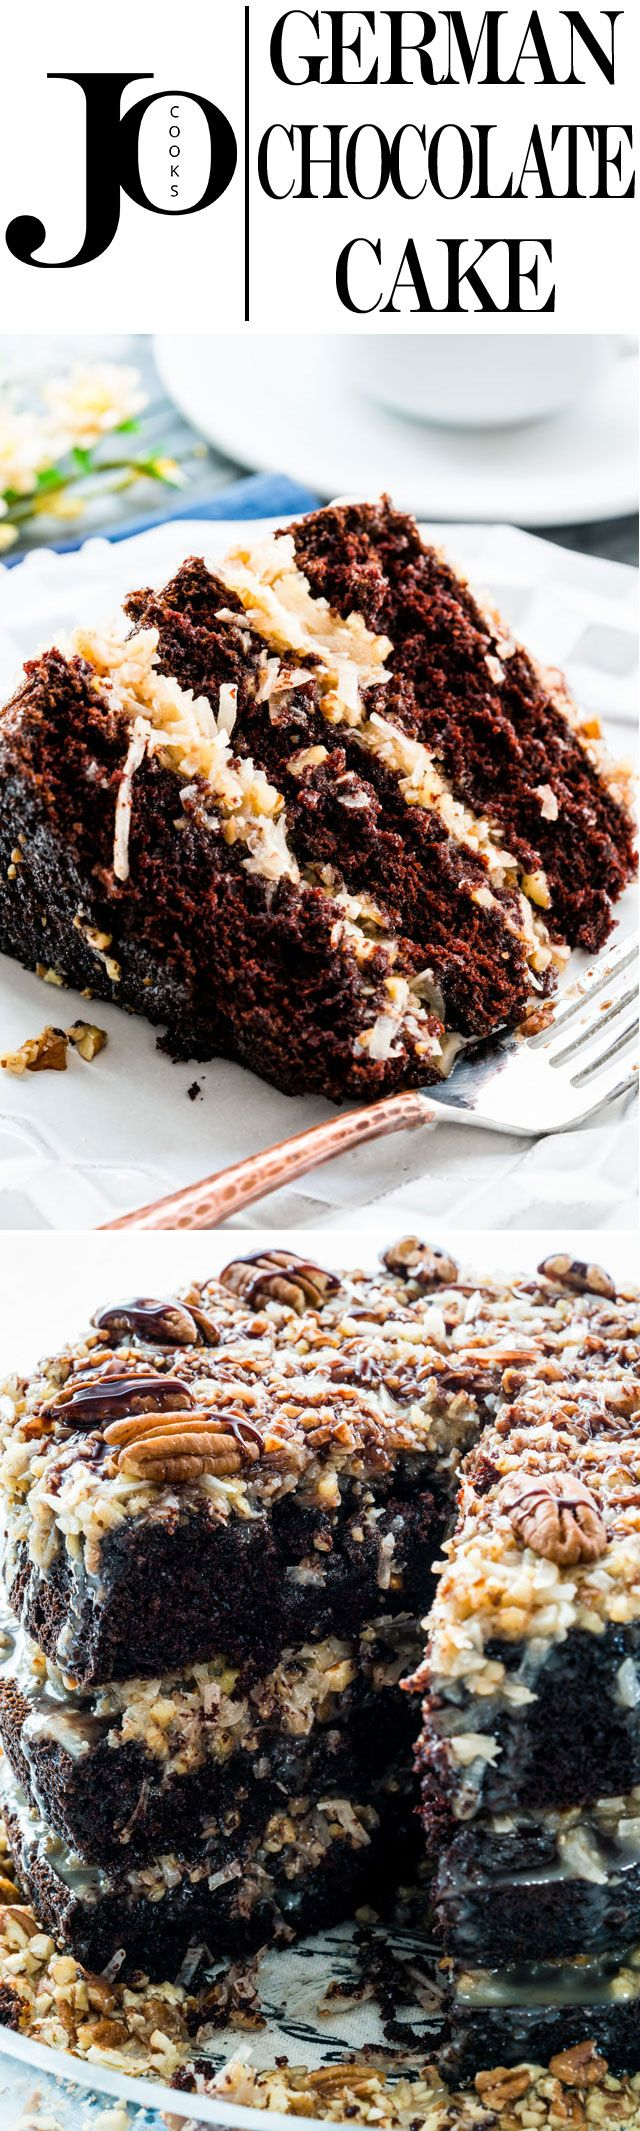 A traditional homemade German Chocolate Cake with layers of moist and delicious chocolate cake and a rich coconut and pecan frosting!